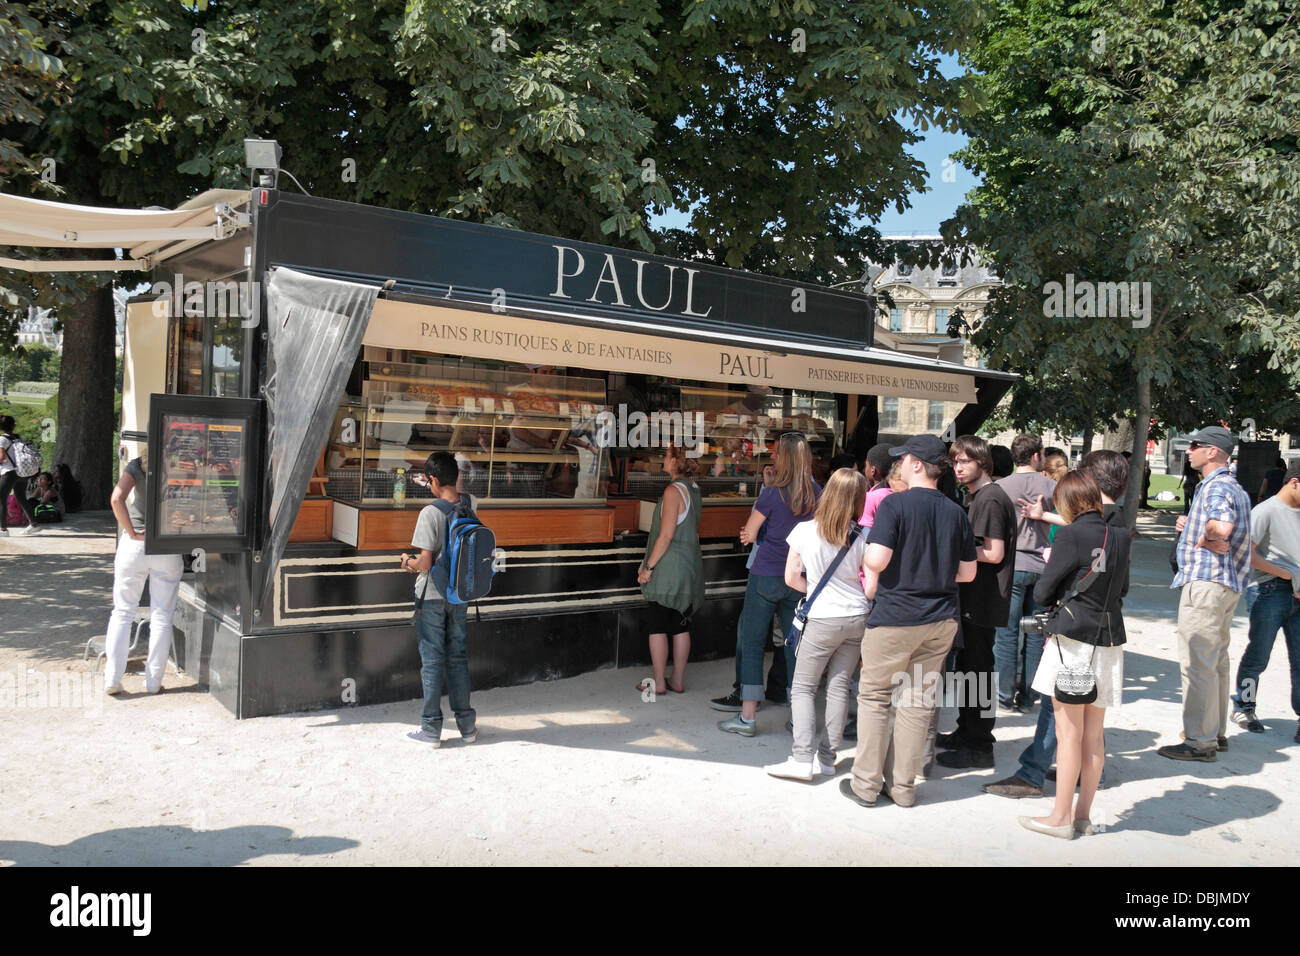 A mobile 'Paul' boulangerie and pâtisserie (bakery and pastry) in Place du Carrousel, Paris, France. - Stock Image